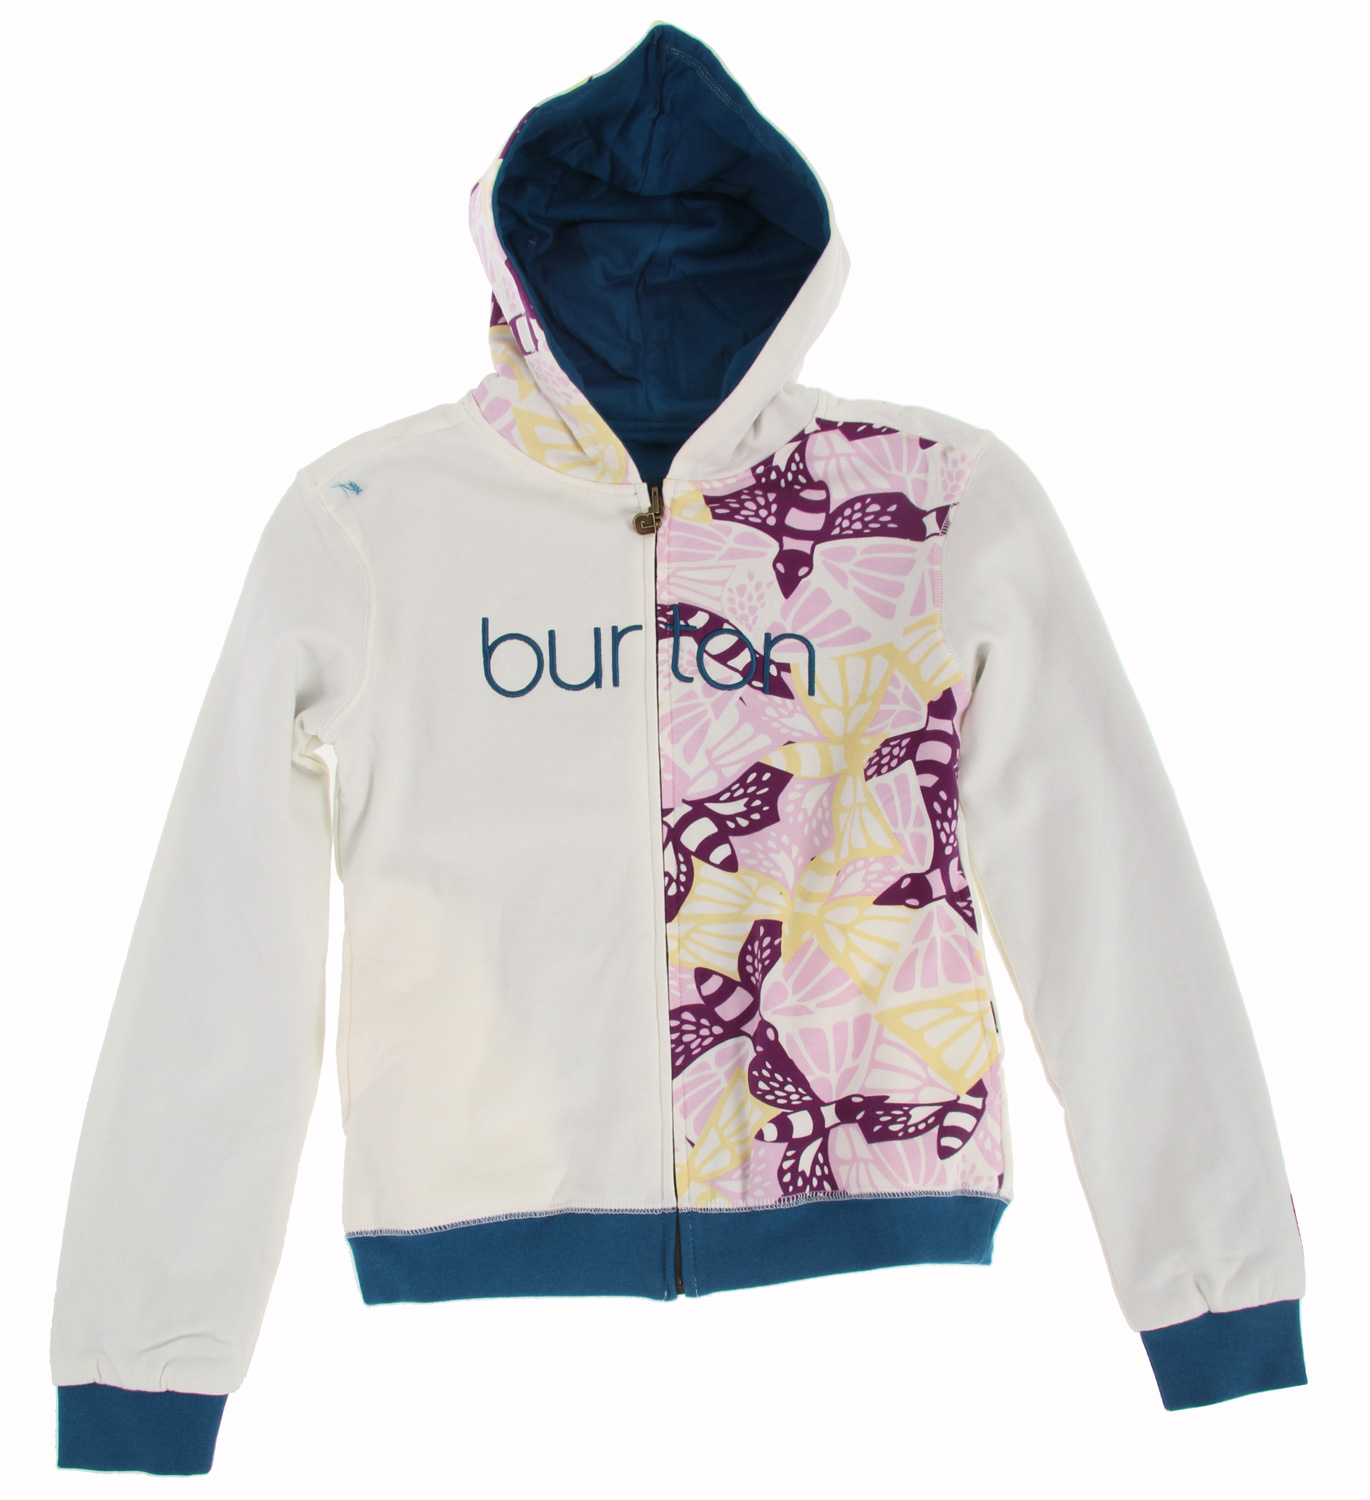 Snowboard Key Features of the Burton Butterlove Girl's Hoodie: 95% Cotton, 5% Spandex, 280G Reversible Full-Zip Hoodie with Water-Based Print Art Embroidery on One Side; Chest Applique on Reverse Side - $21.56